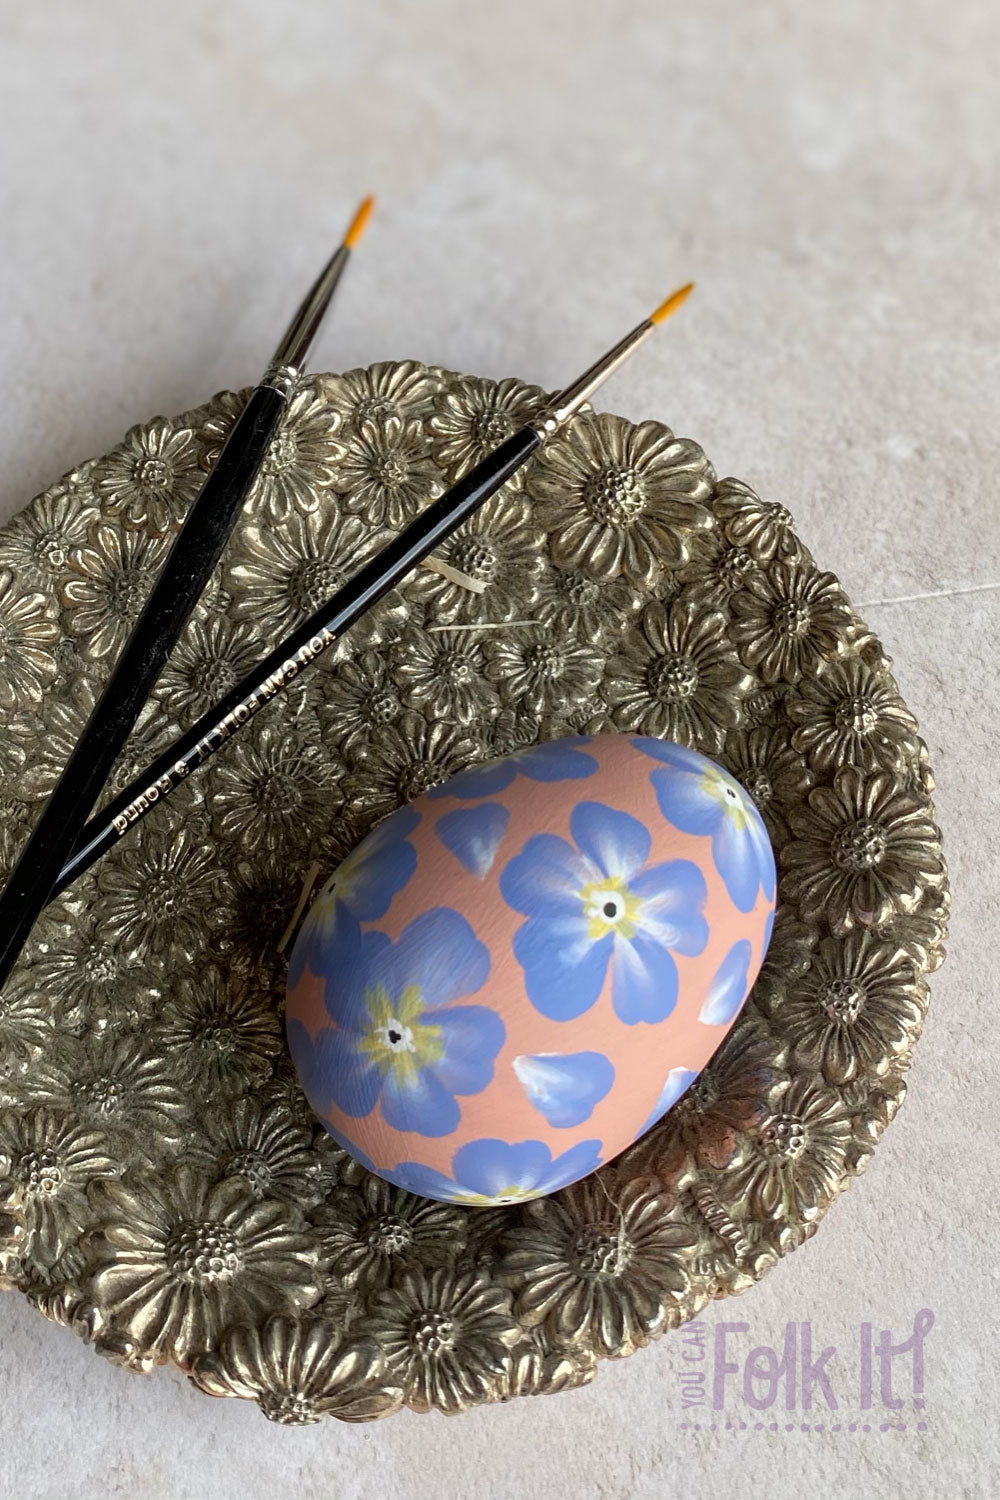 Ceramic egg hand painted with forget me not style flowers using the blossom painting tutorial from You Can Folk It's Folk Art masterclass for Intermediate painters